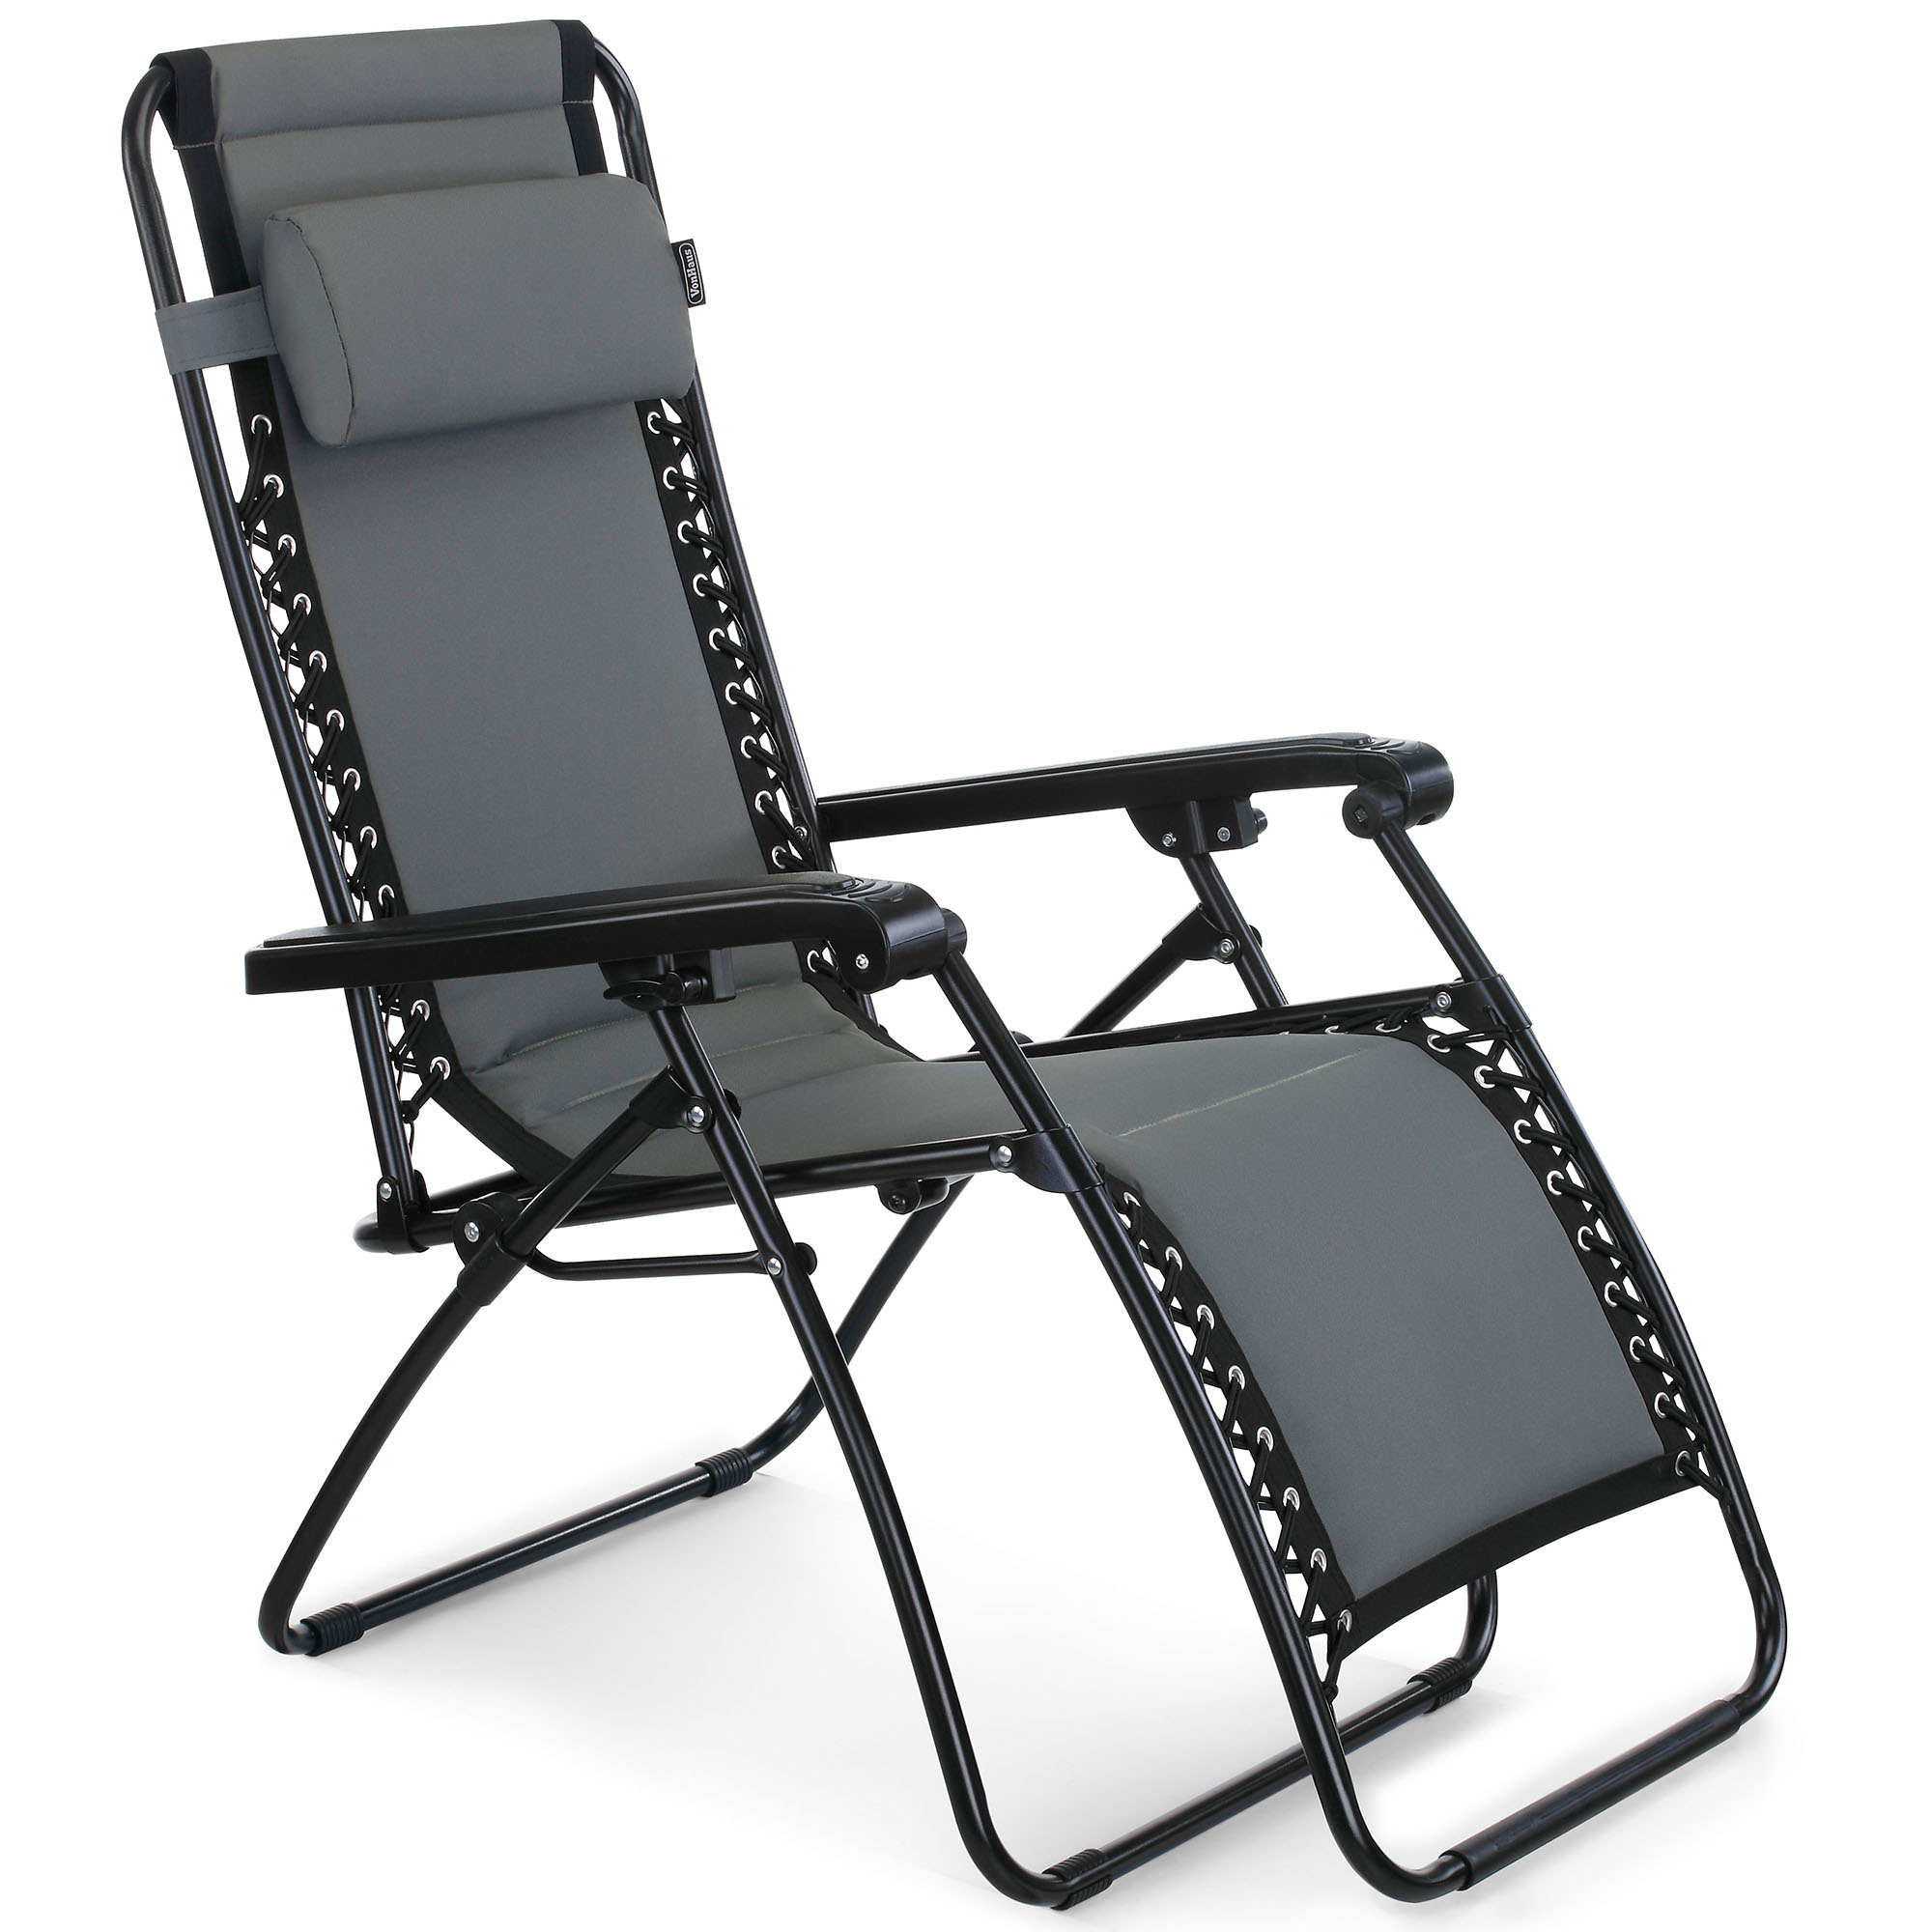 Vonhaus Padded Zero Gravity Chair Outdoor Garden Patio